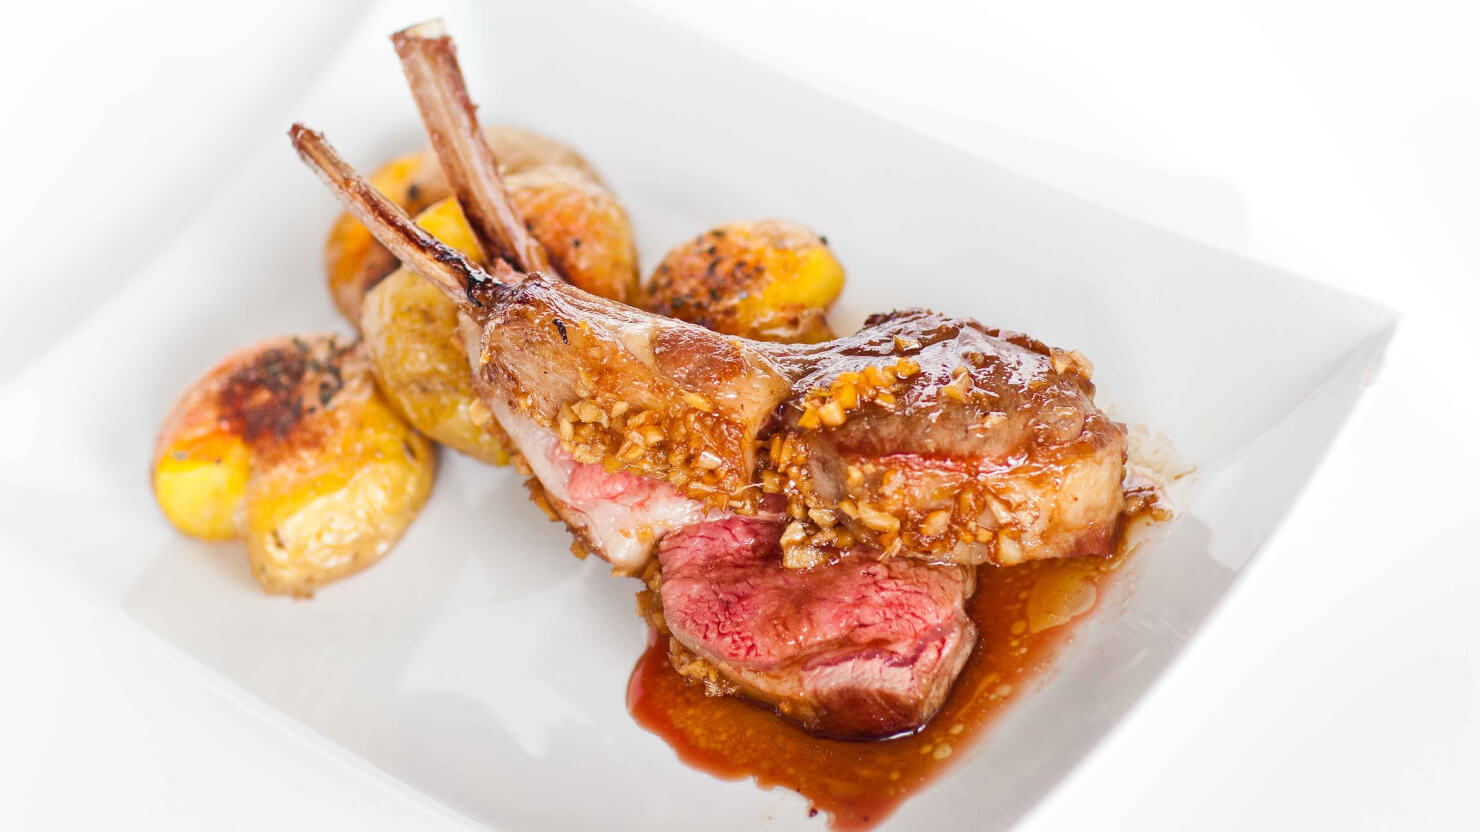 Garlic Ginger Glazed Lamb Chops with Crush Baby Potatoes